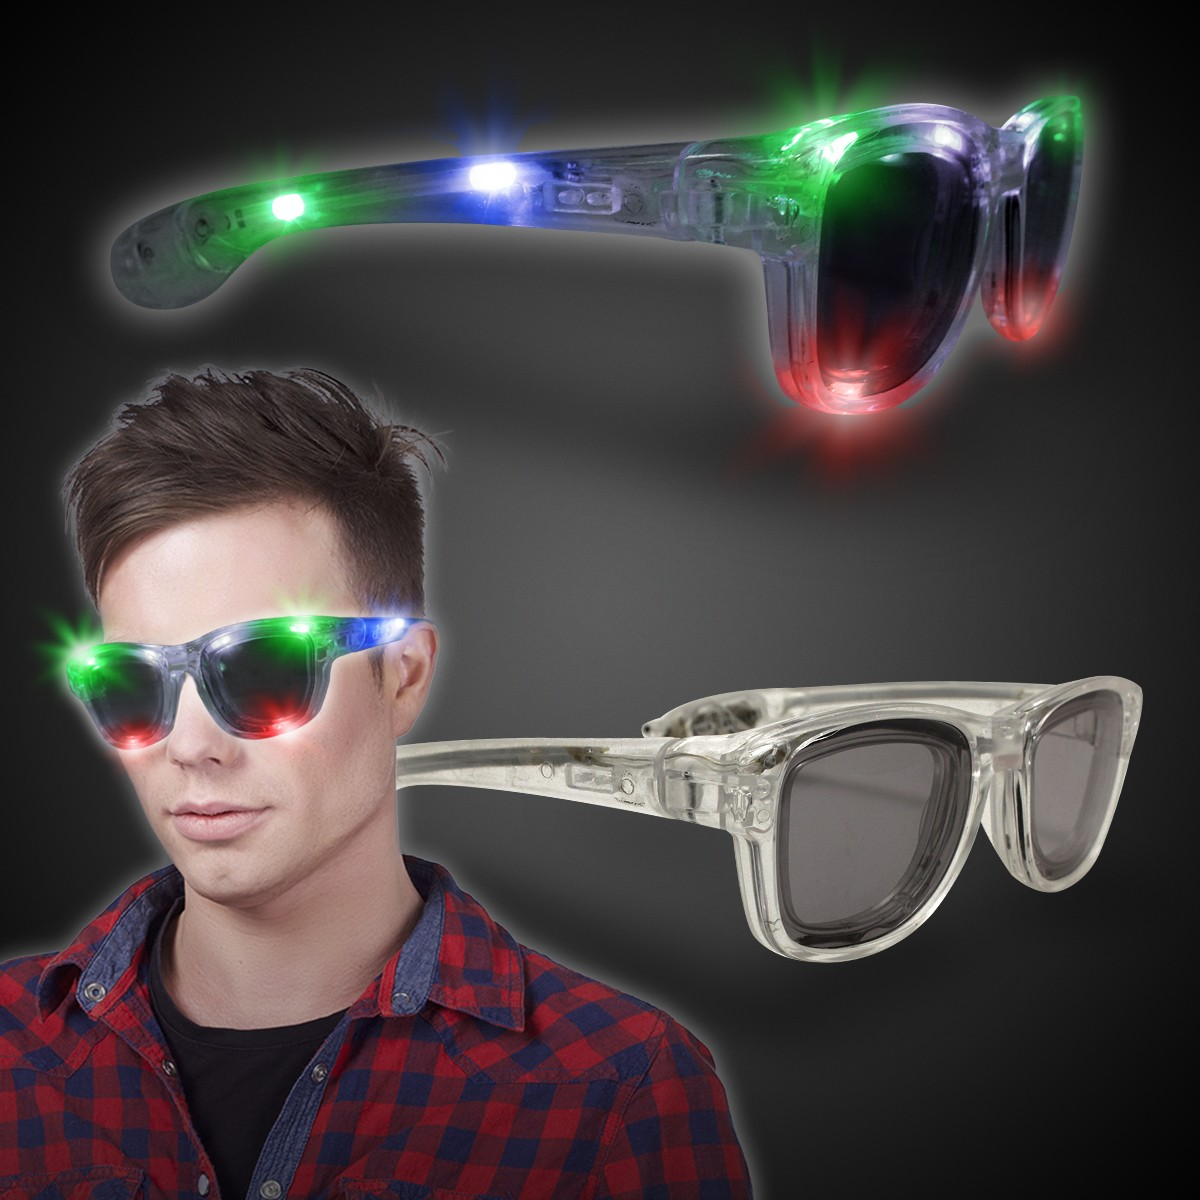 SQUARE LED SUNGLASSES - CLEAR